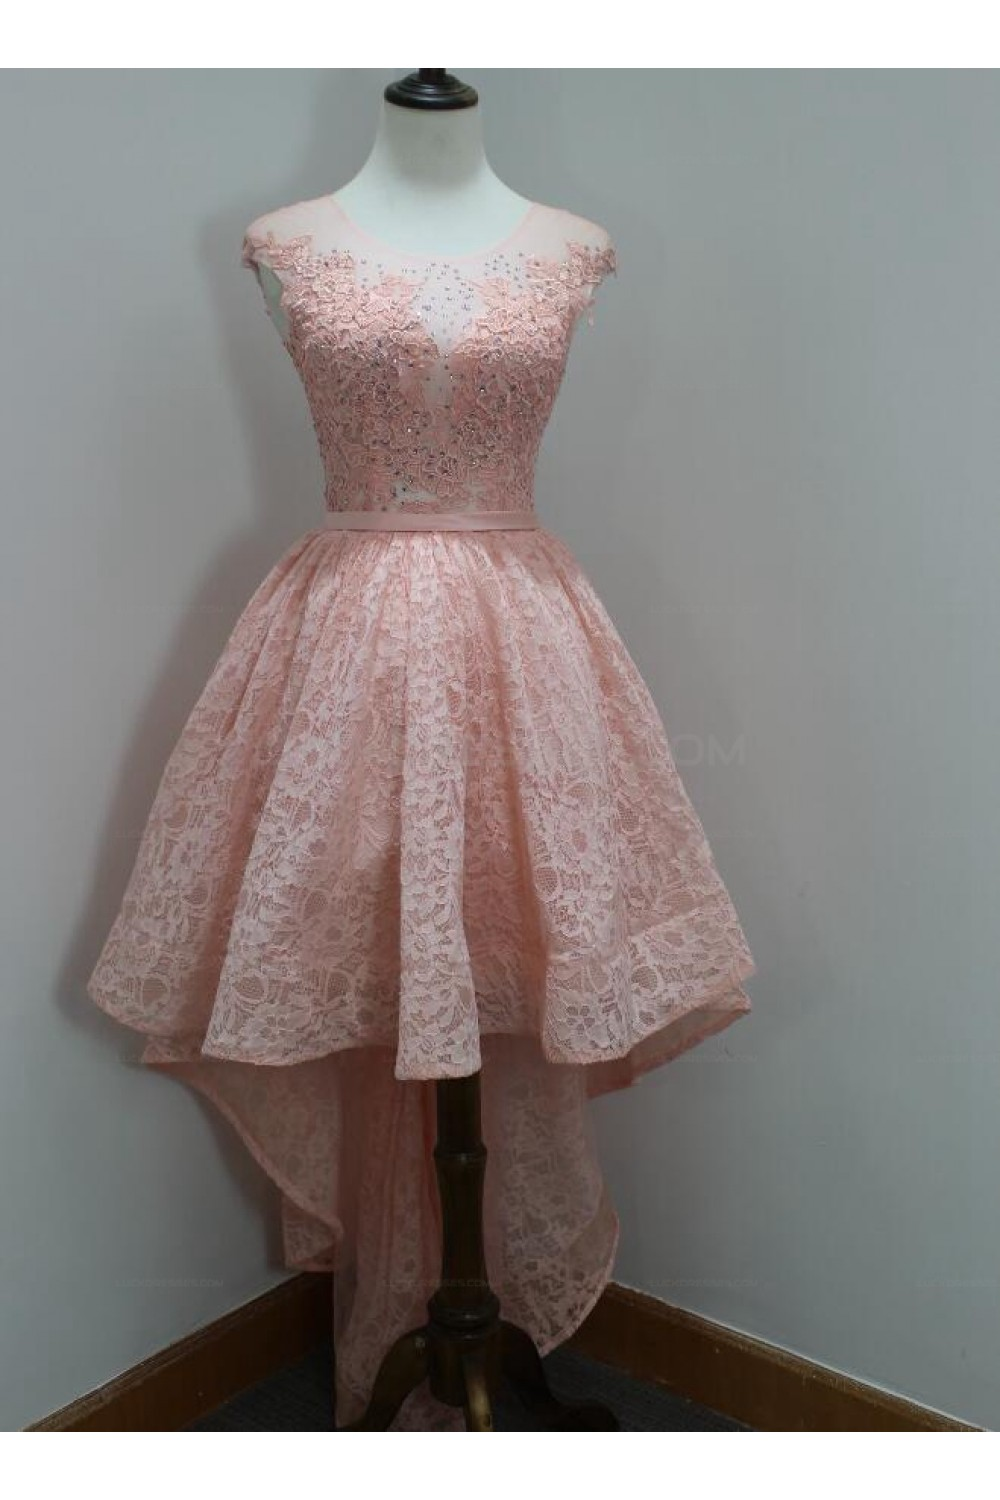 0d44888d3ae High Low Short Pink Beaded Lace Prom Homecoming Graduation Party Dresses  3020719